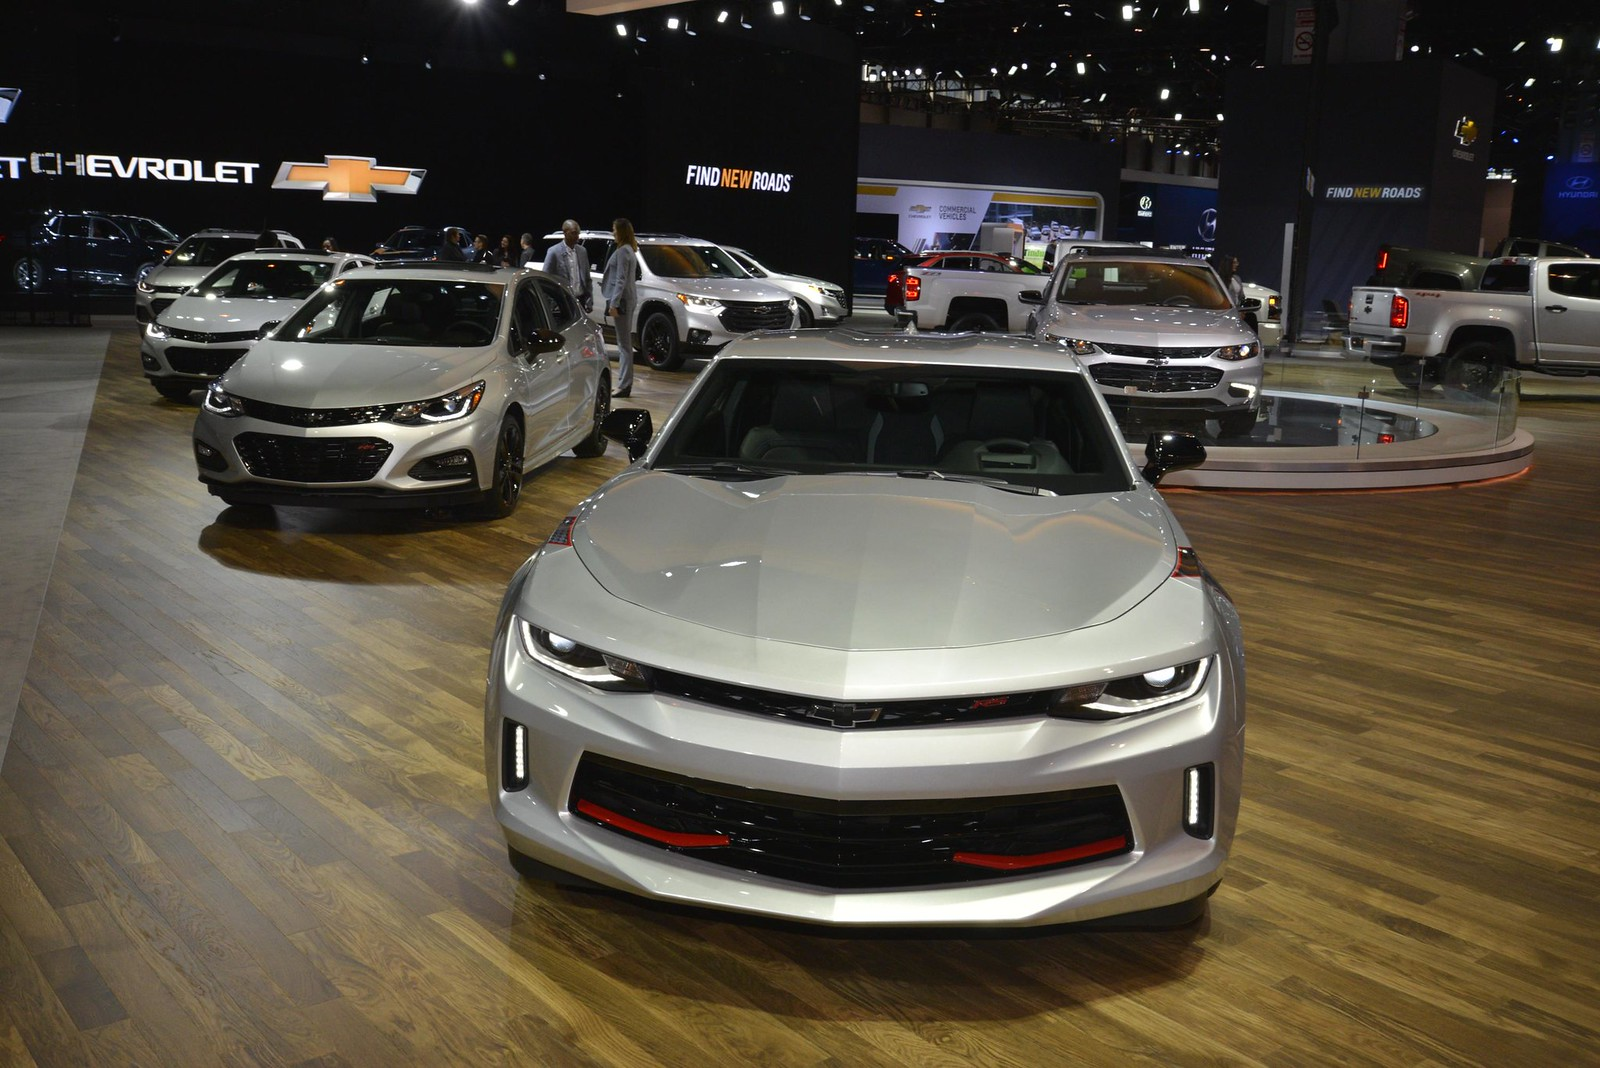 Chevrolet Redline Edition live photos: 2017 Chicago Auto Show